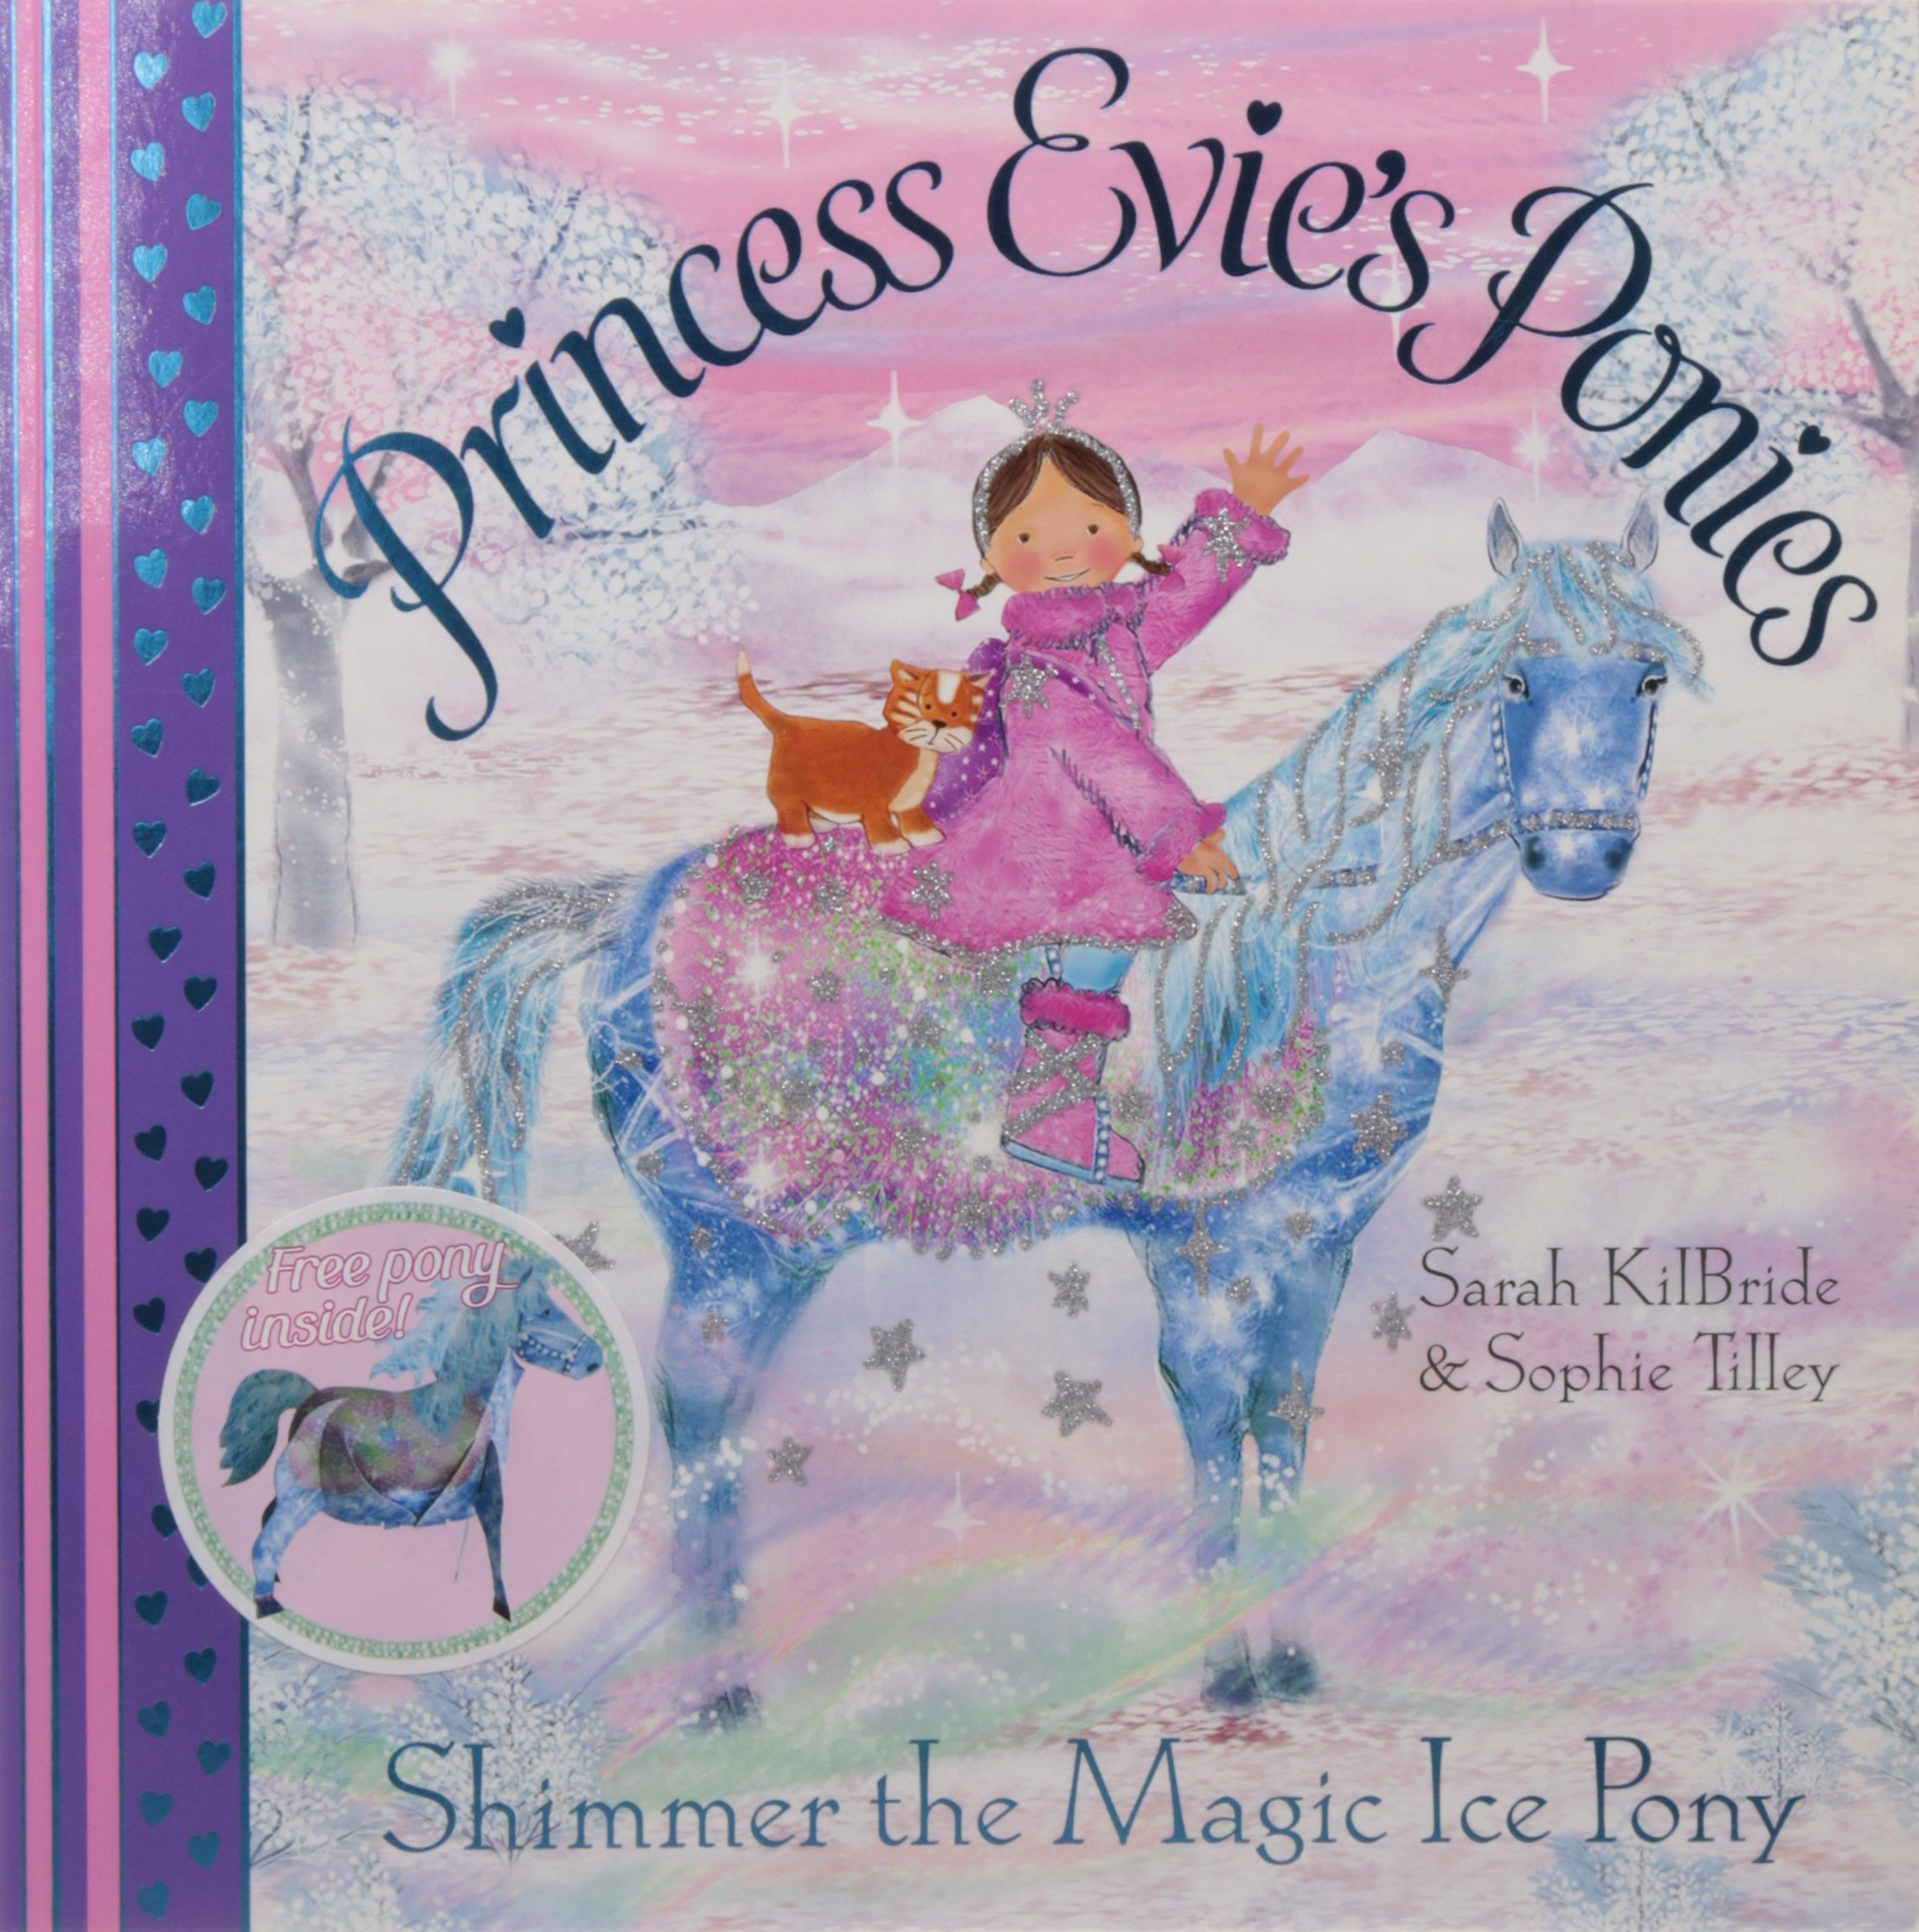 Princess Evies Ponies: Shimmer the Magic Ice Pony